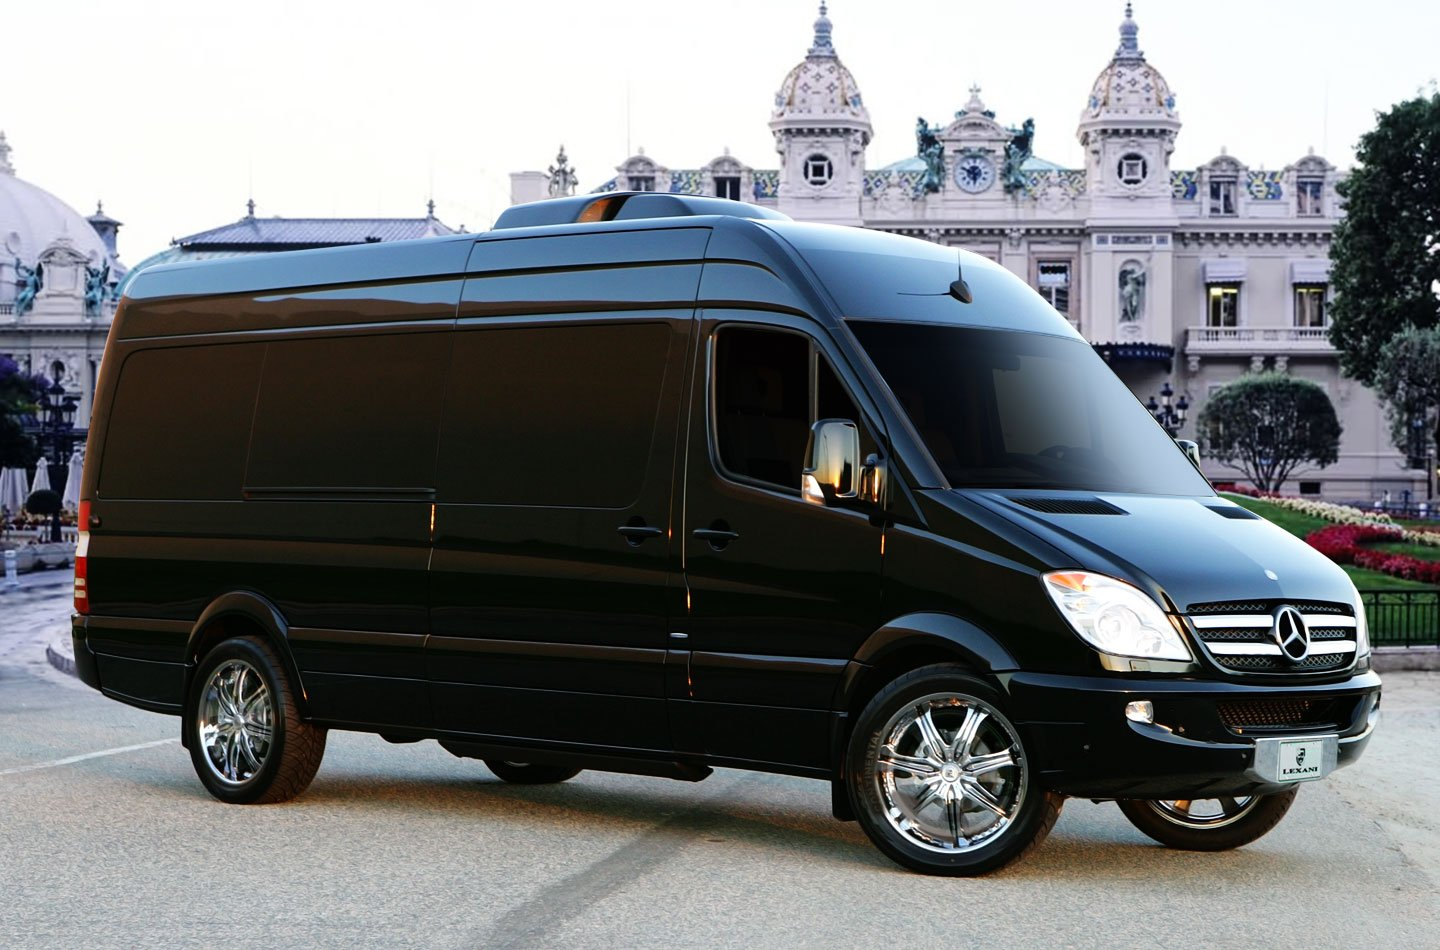 Mercedes Benz Sprinter L5 B Van Rides With A High tech